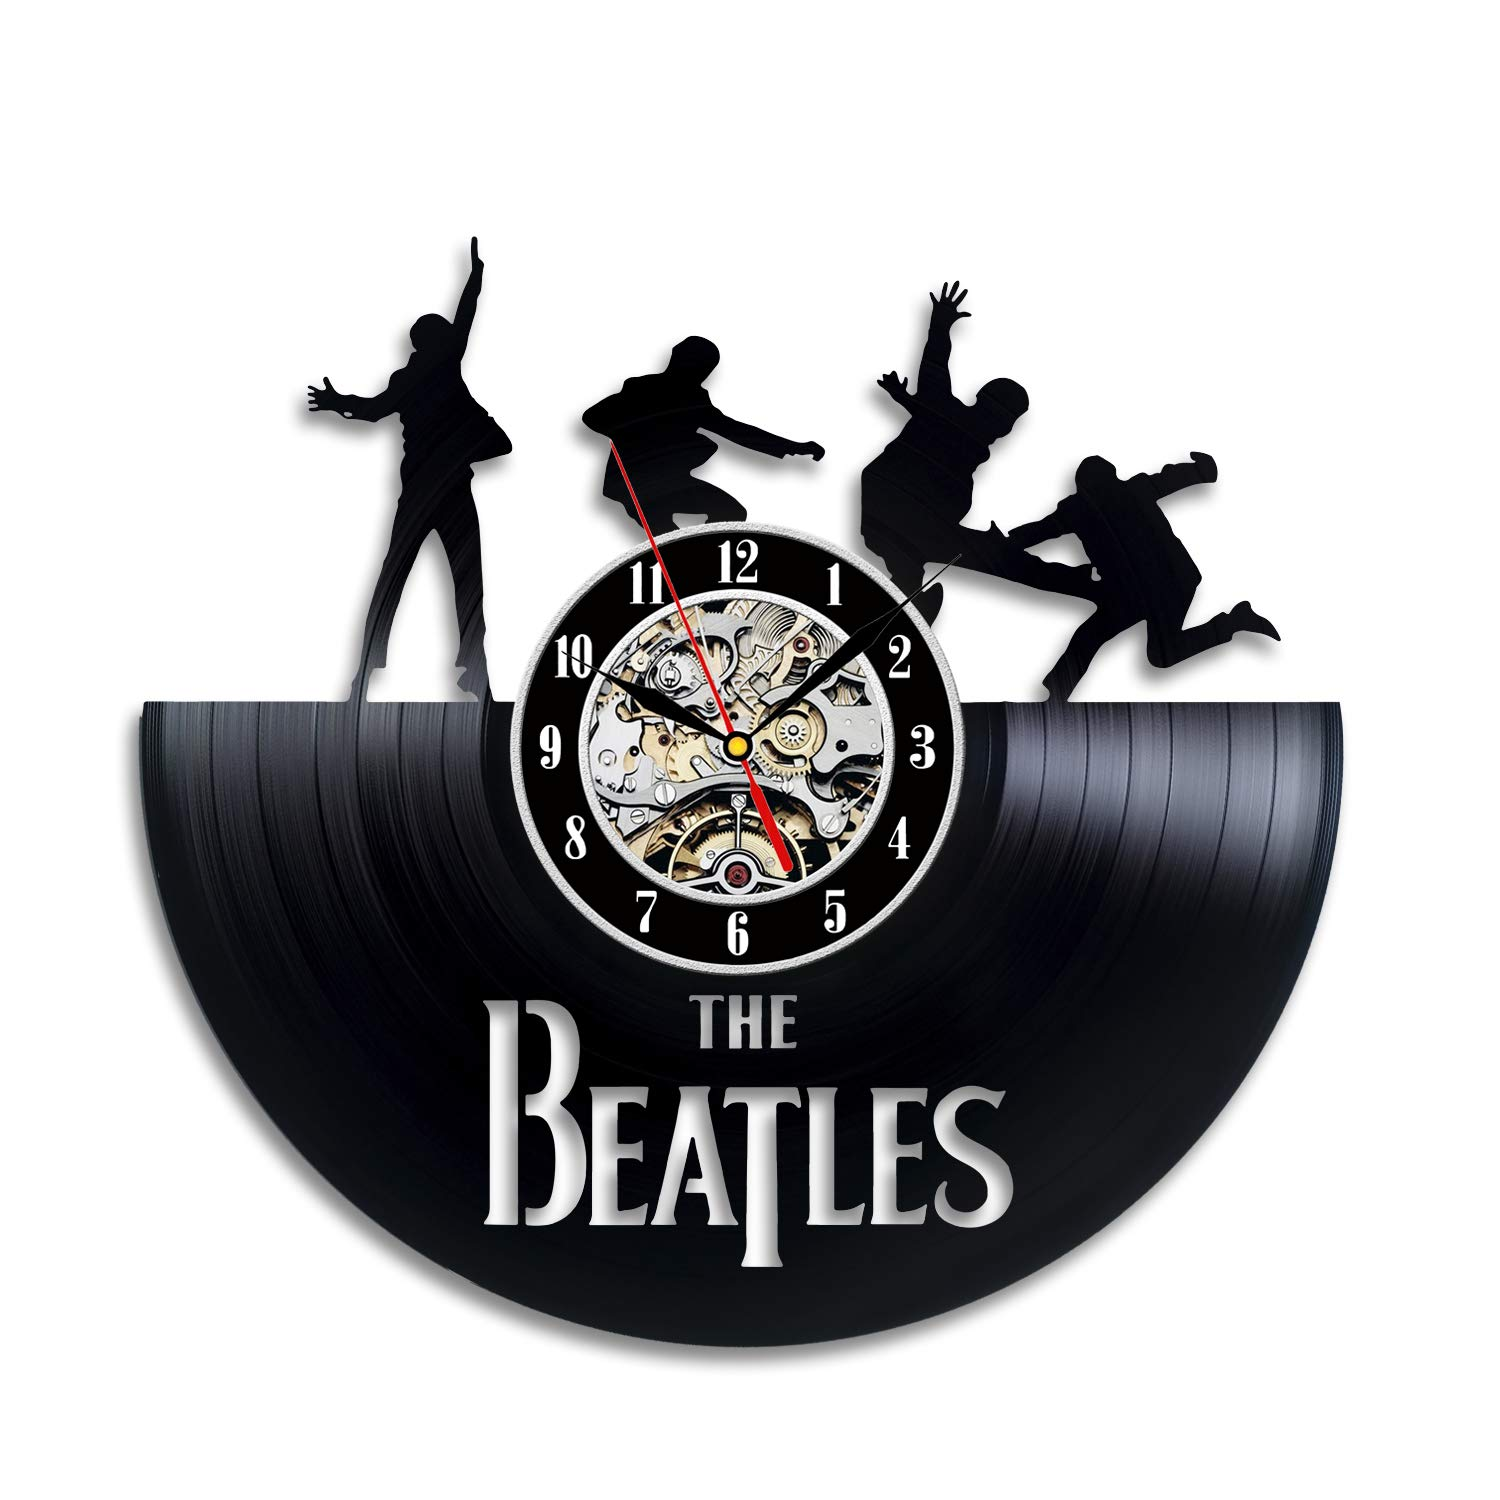 The Beatles Decor Vinyl Wall Clock Fan Gift Children's Room Decor Idea Home Art Party VinylEvolution VE223